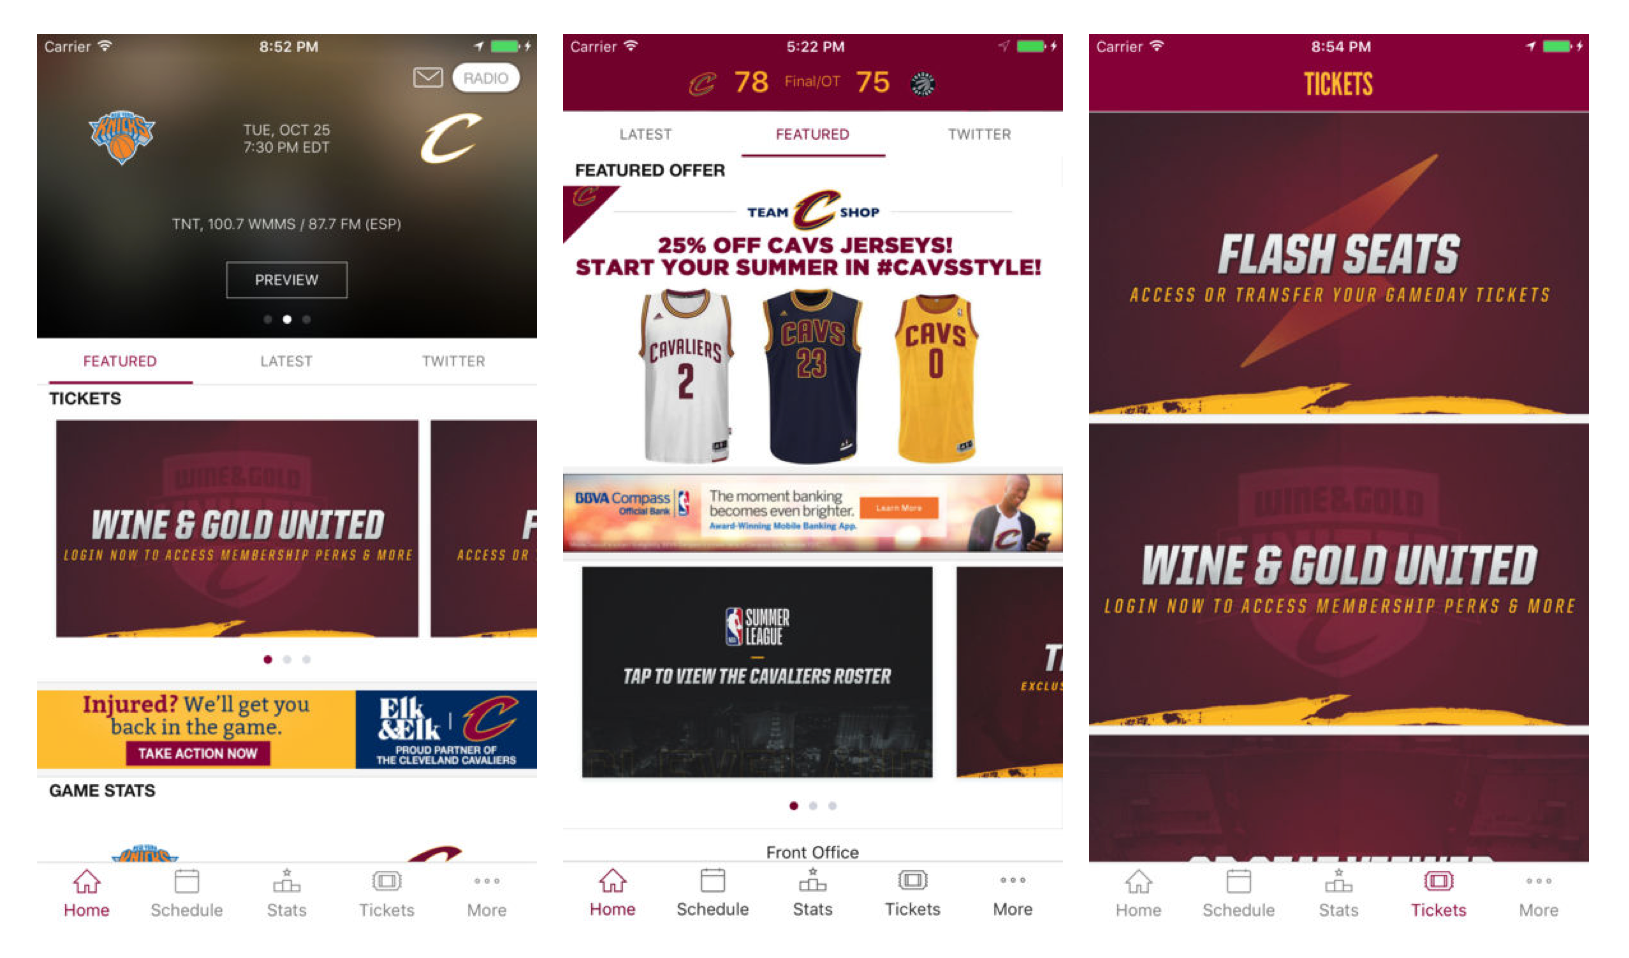 cleveland-cavaliers-mobile-app-screenshots